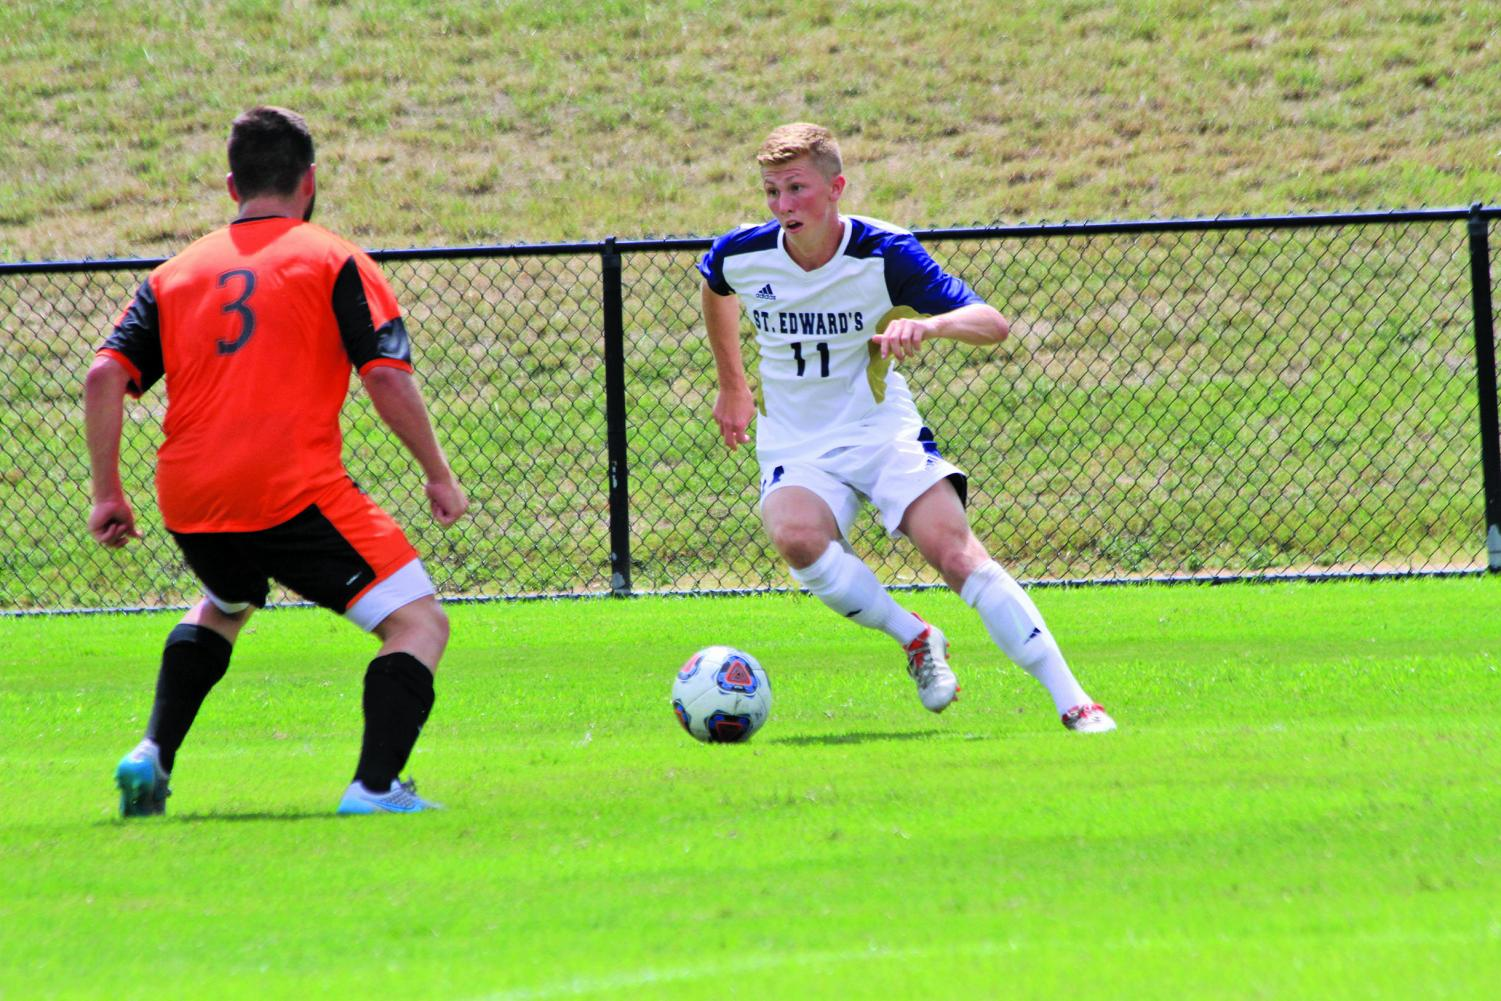 Senior Matt Parker hopes to continue balancing his athletic and academic excellence this season.